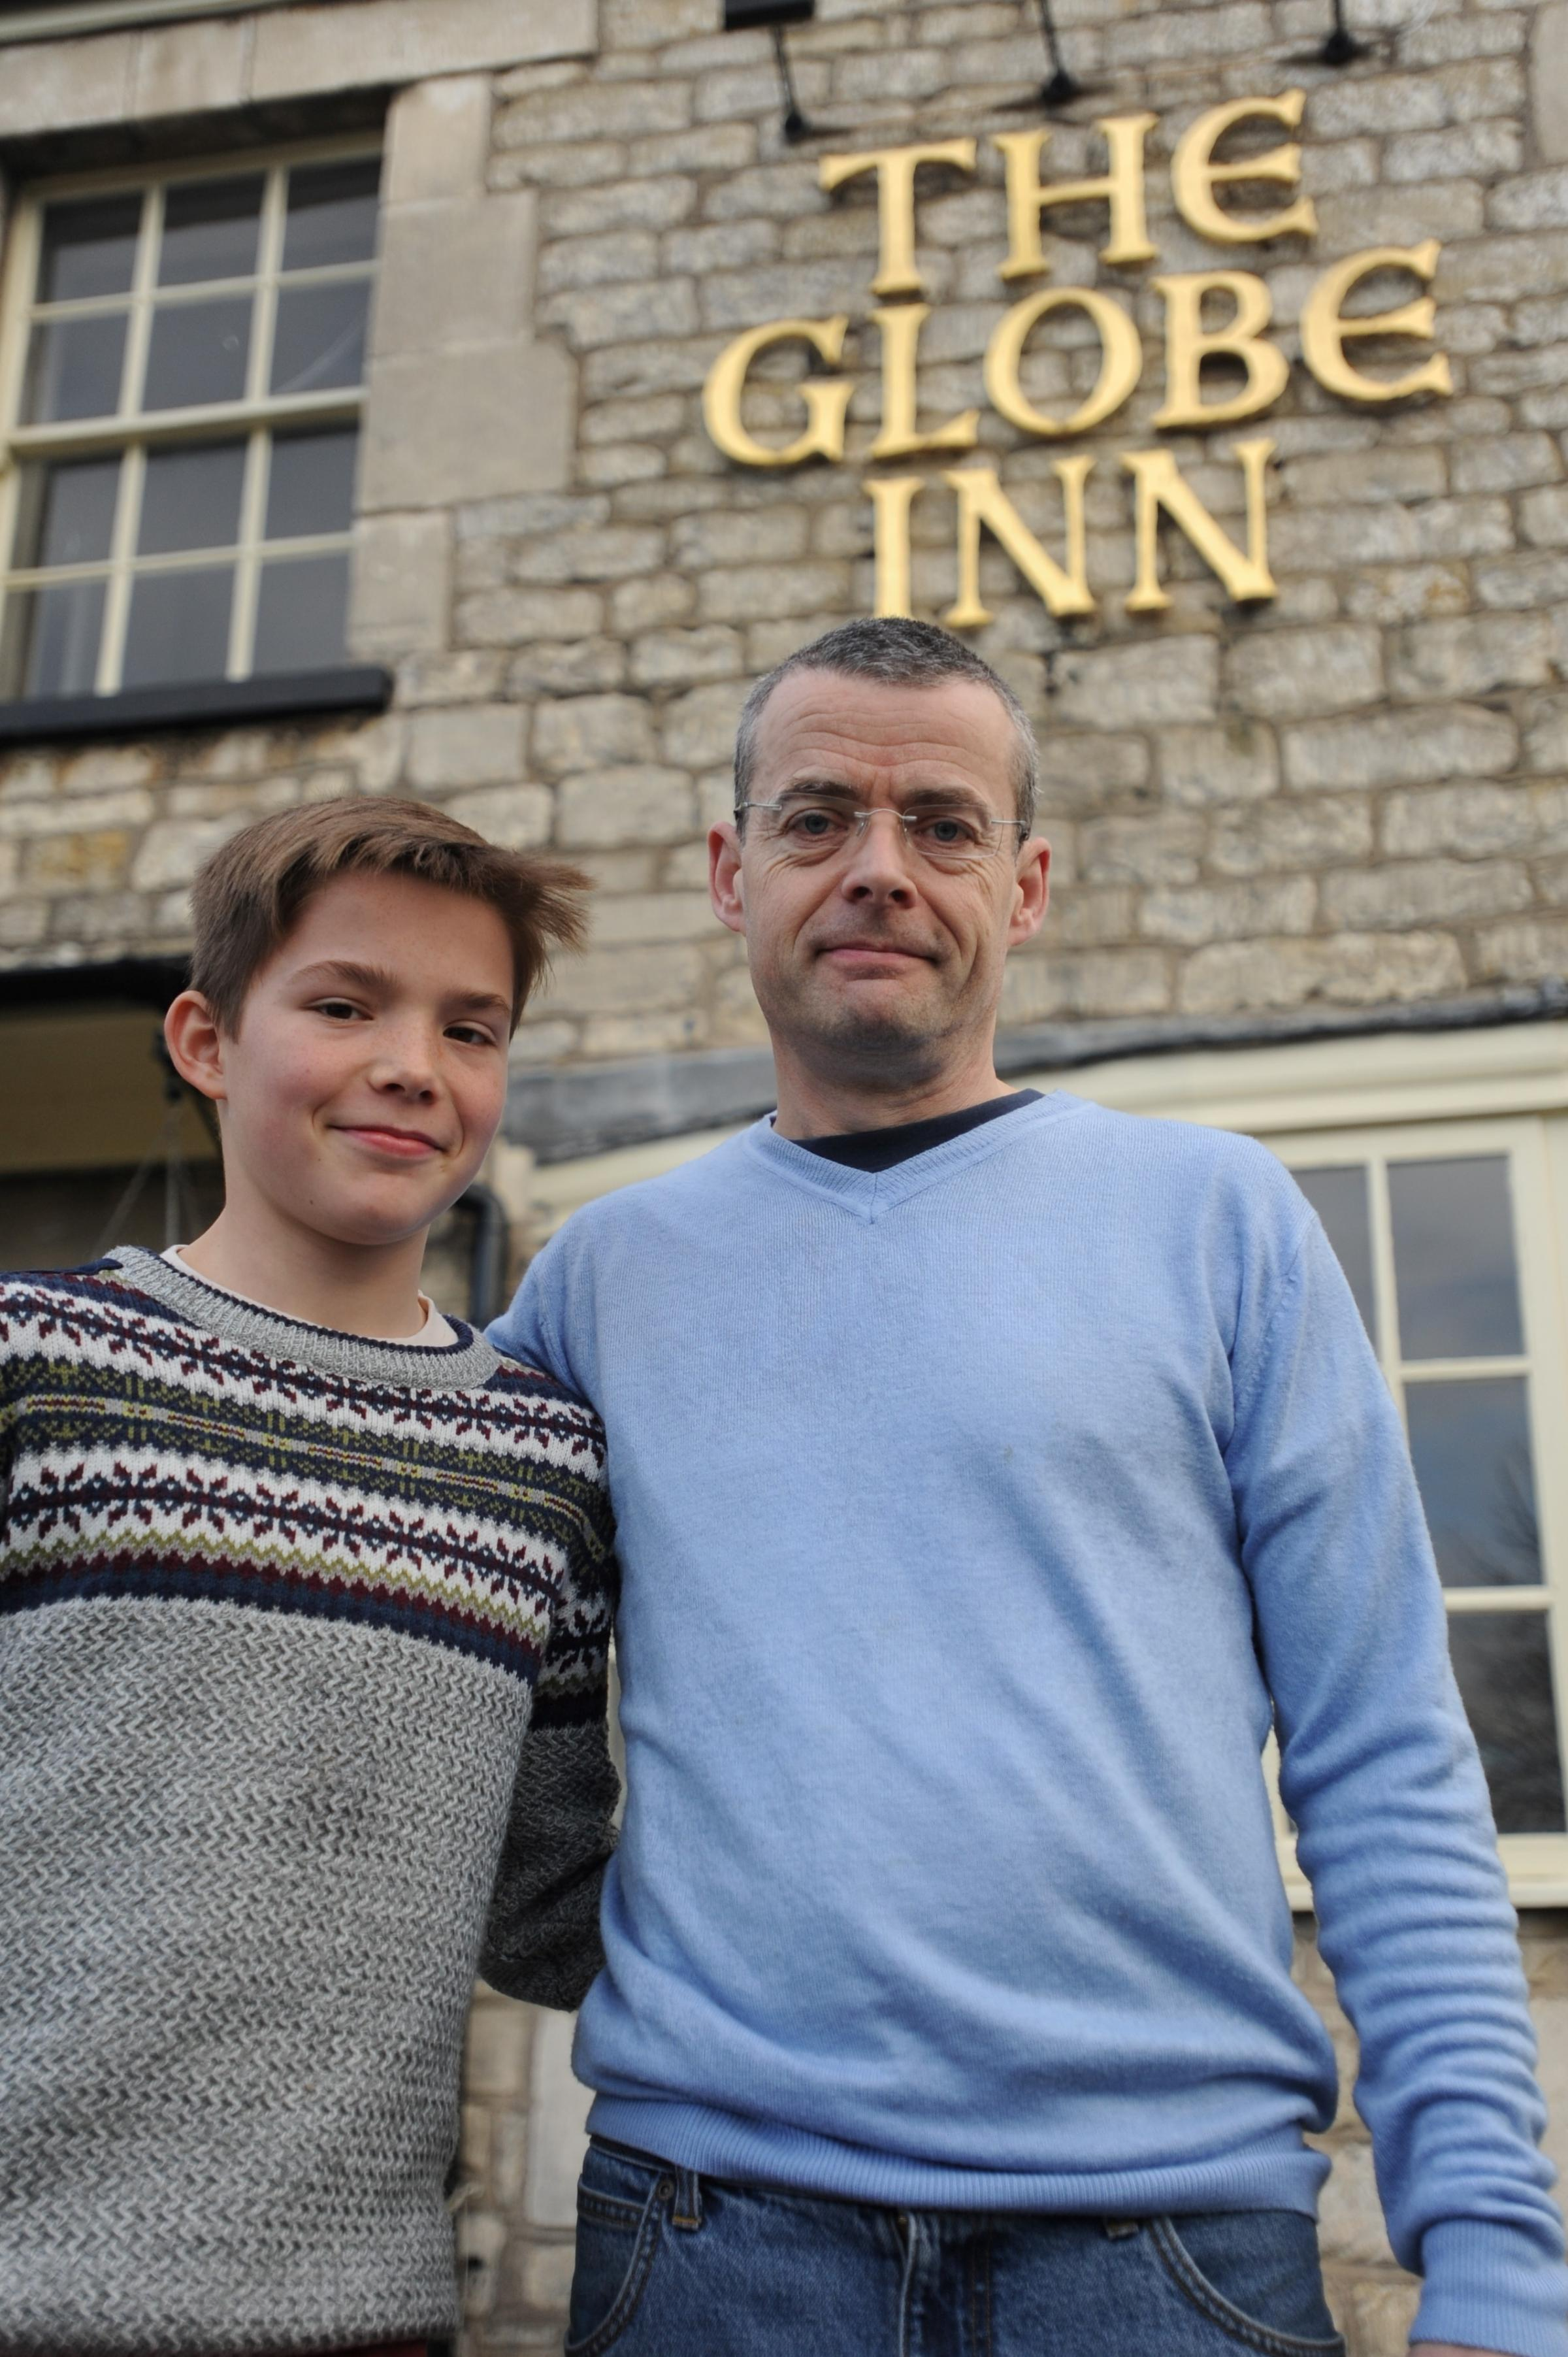 Boy's treasured possessions lost in fire at the Globe Inn